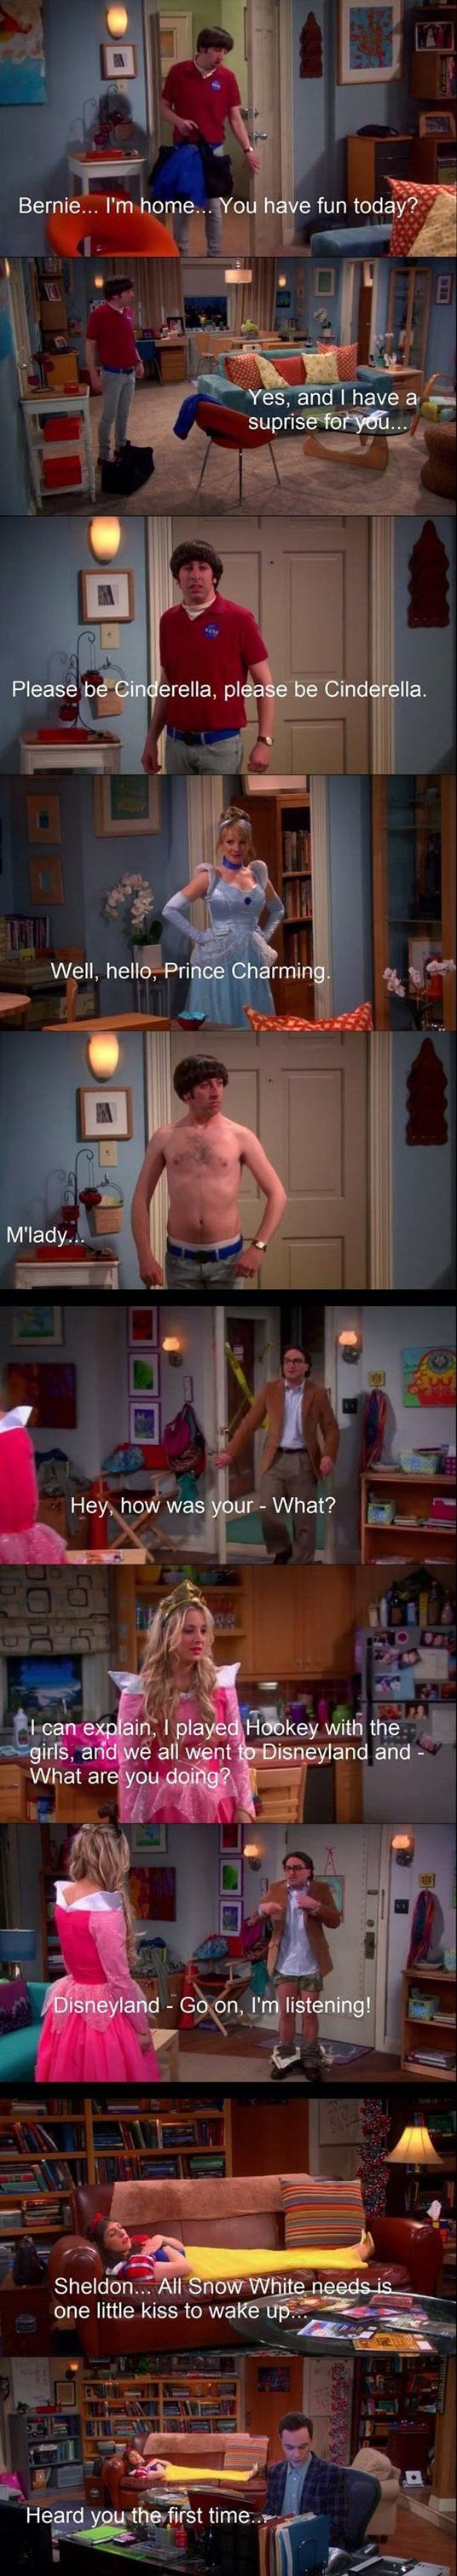 Funny - When The Big Bang Theory meets Disney - www.funny-pictures-blog.com